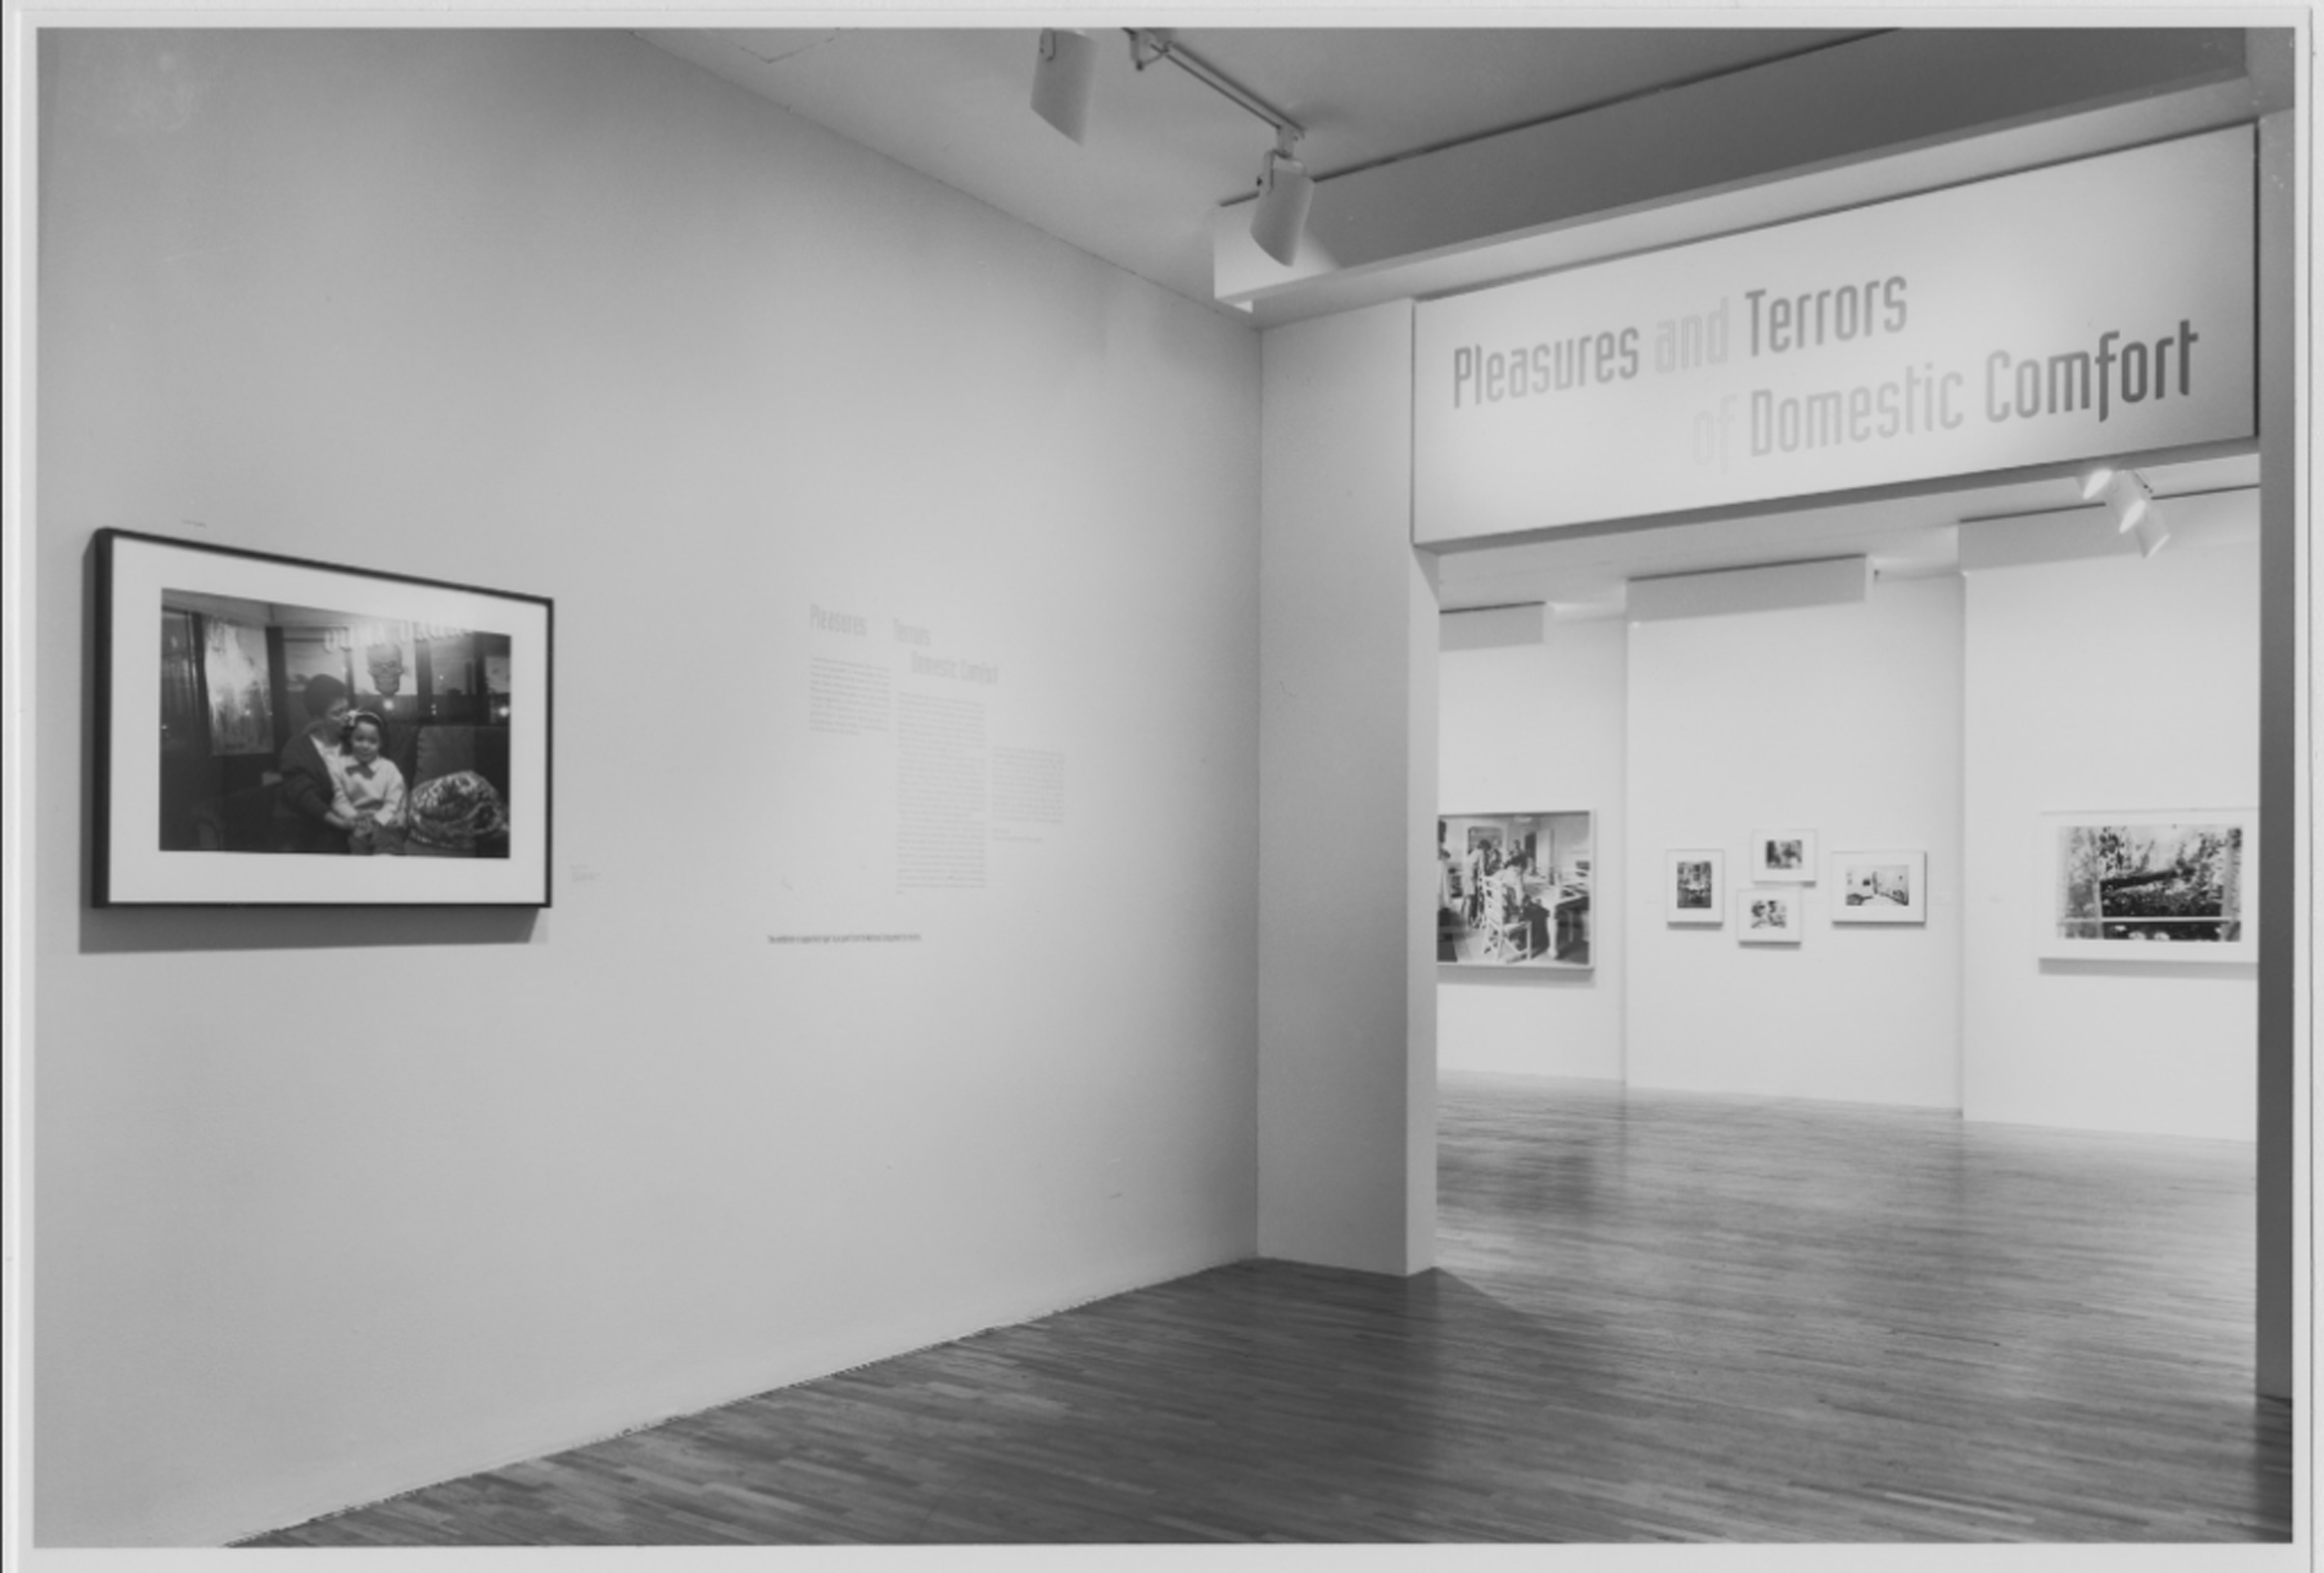 Galerie Barbara Thumm \ Carrie Mae Weems – Pleasures and Terrors of Domestic Comfort